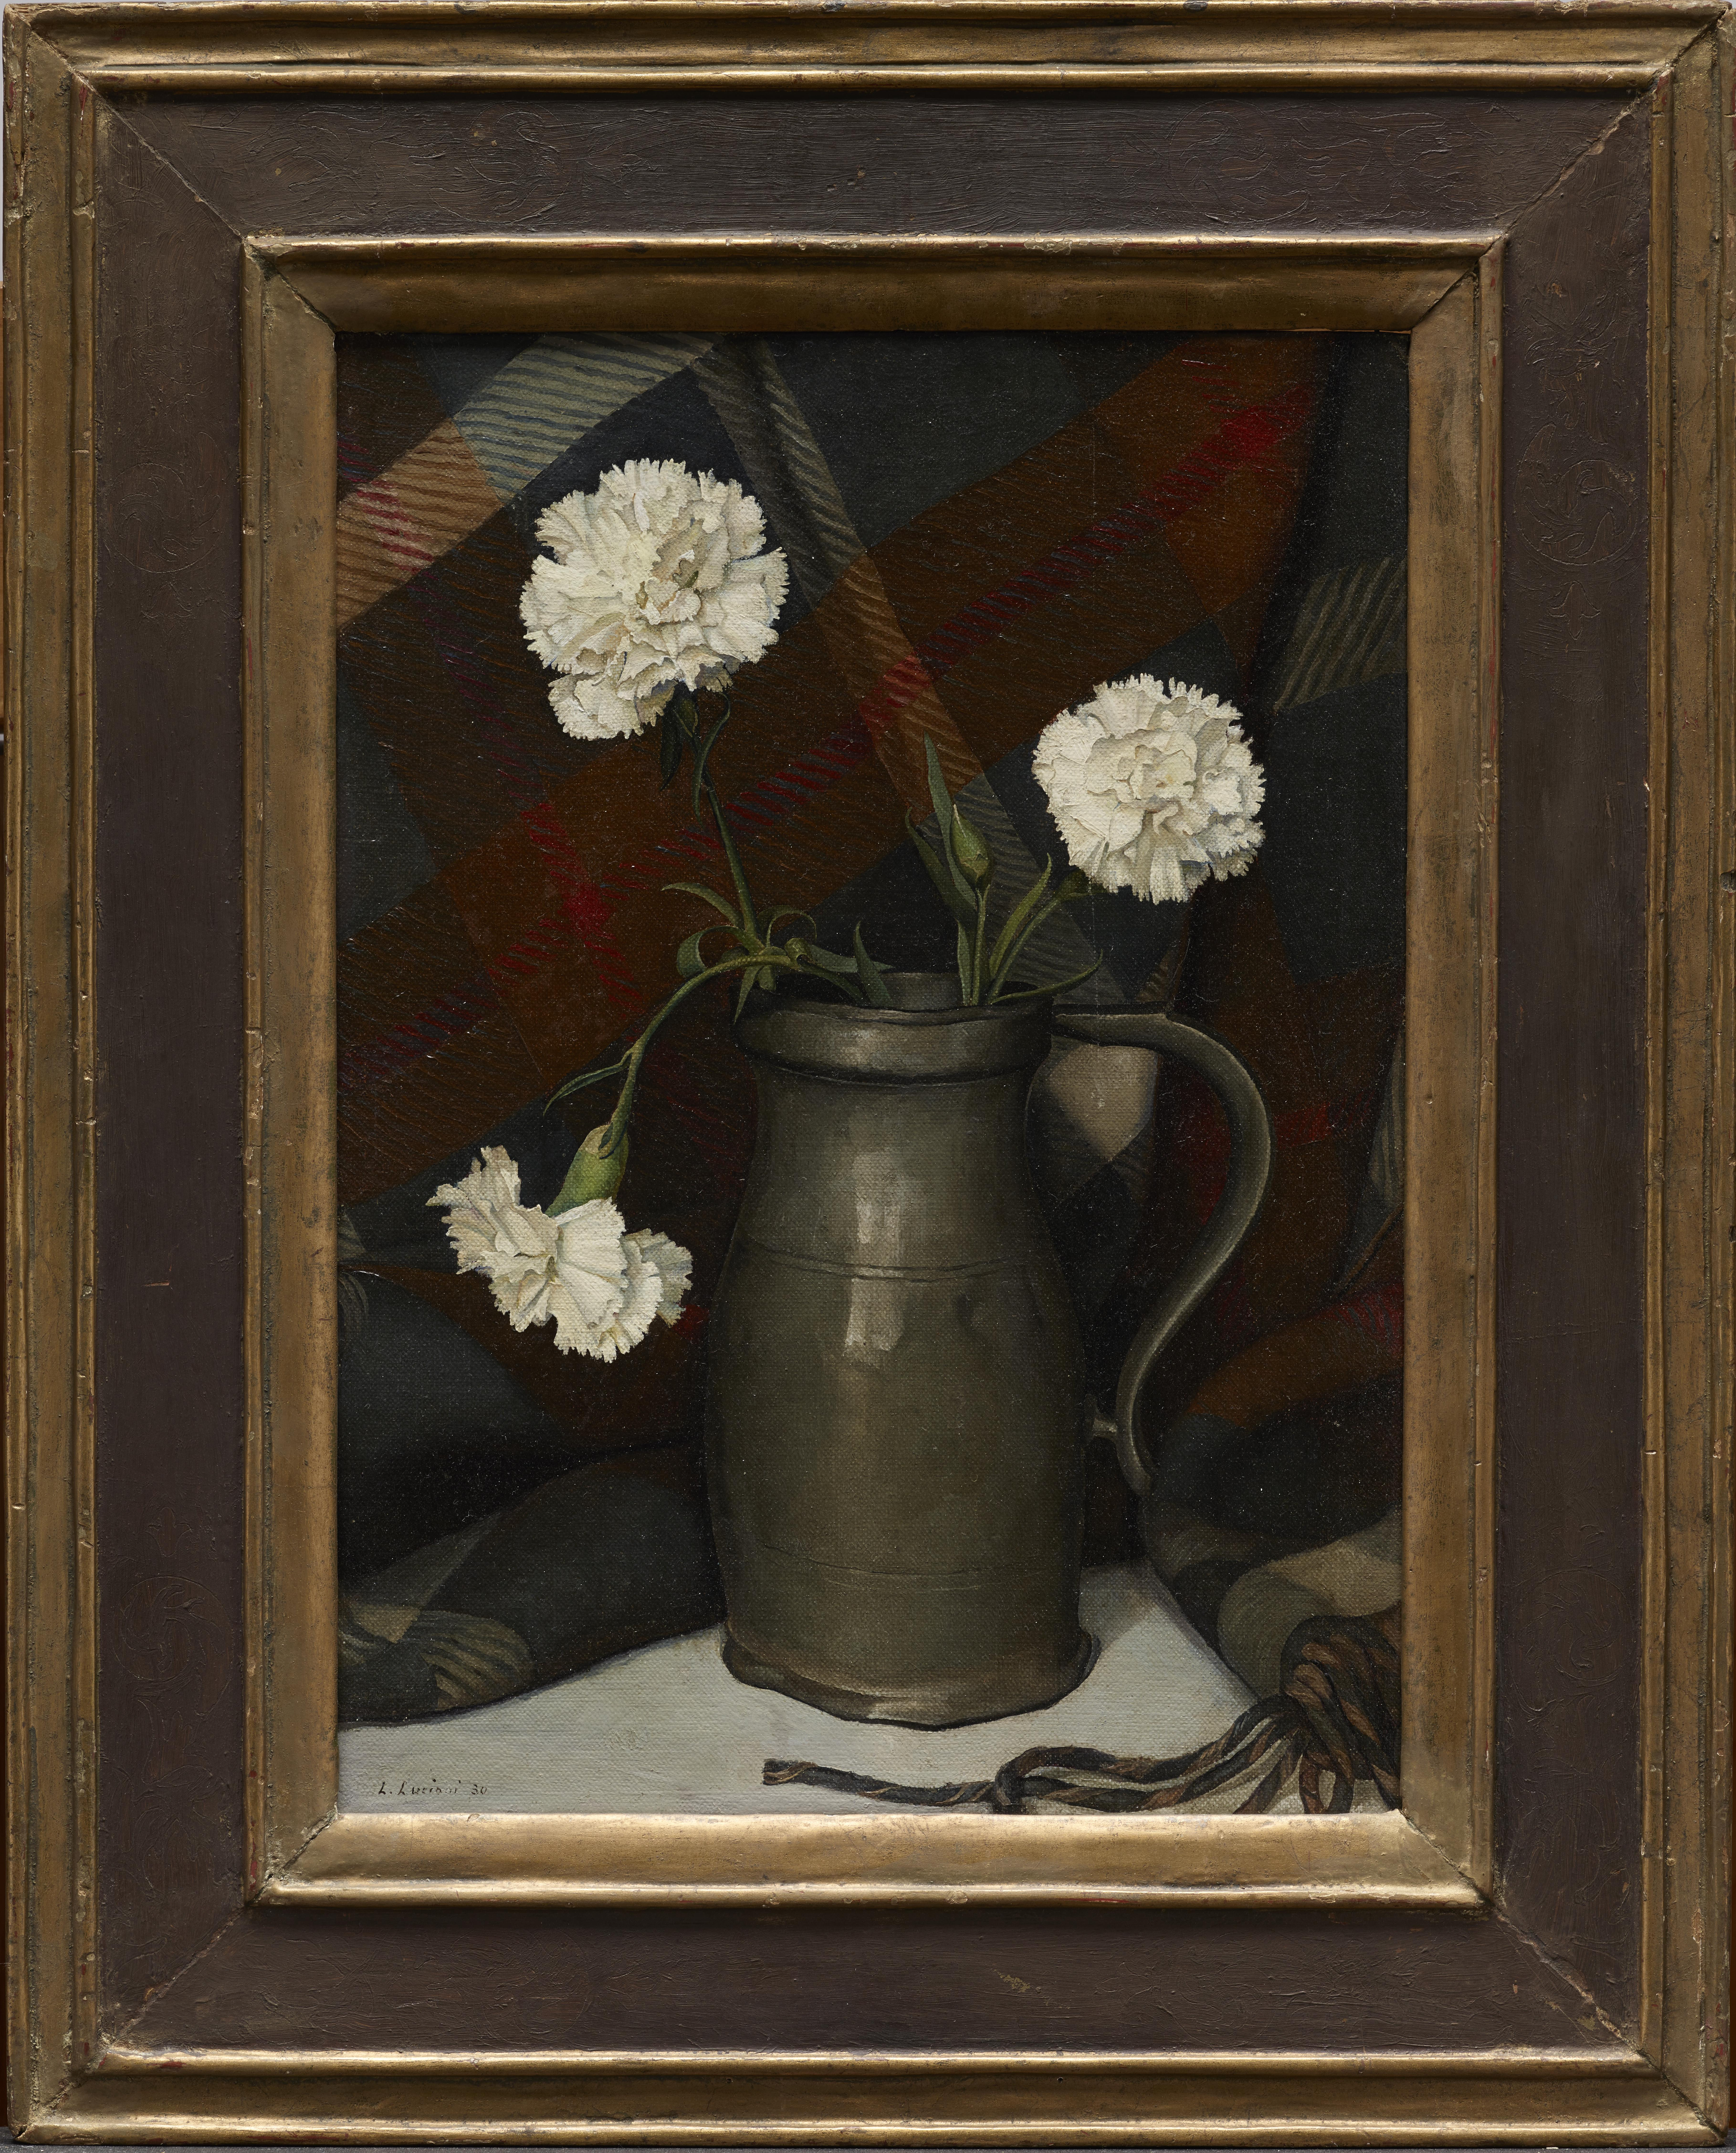 Lucioni painting of three carnations (one wilting) in a pewter pitcher with a plaid drape behind them and coiled rope in the right foreground. Luigi Lucioni, Pewter Pitcher and Carnations, 1930, Dallas Museum of Art, Dallas, TX, USA.